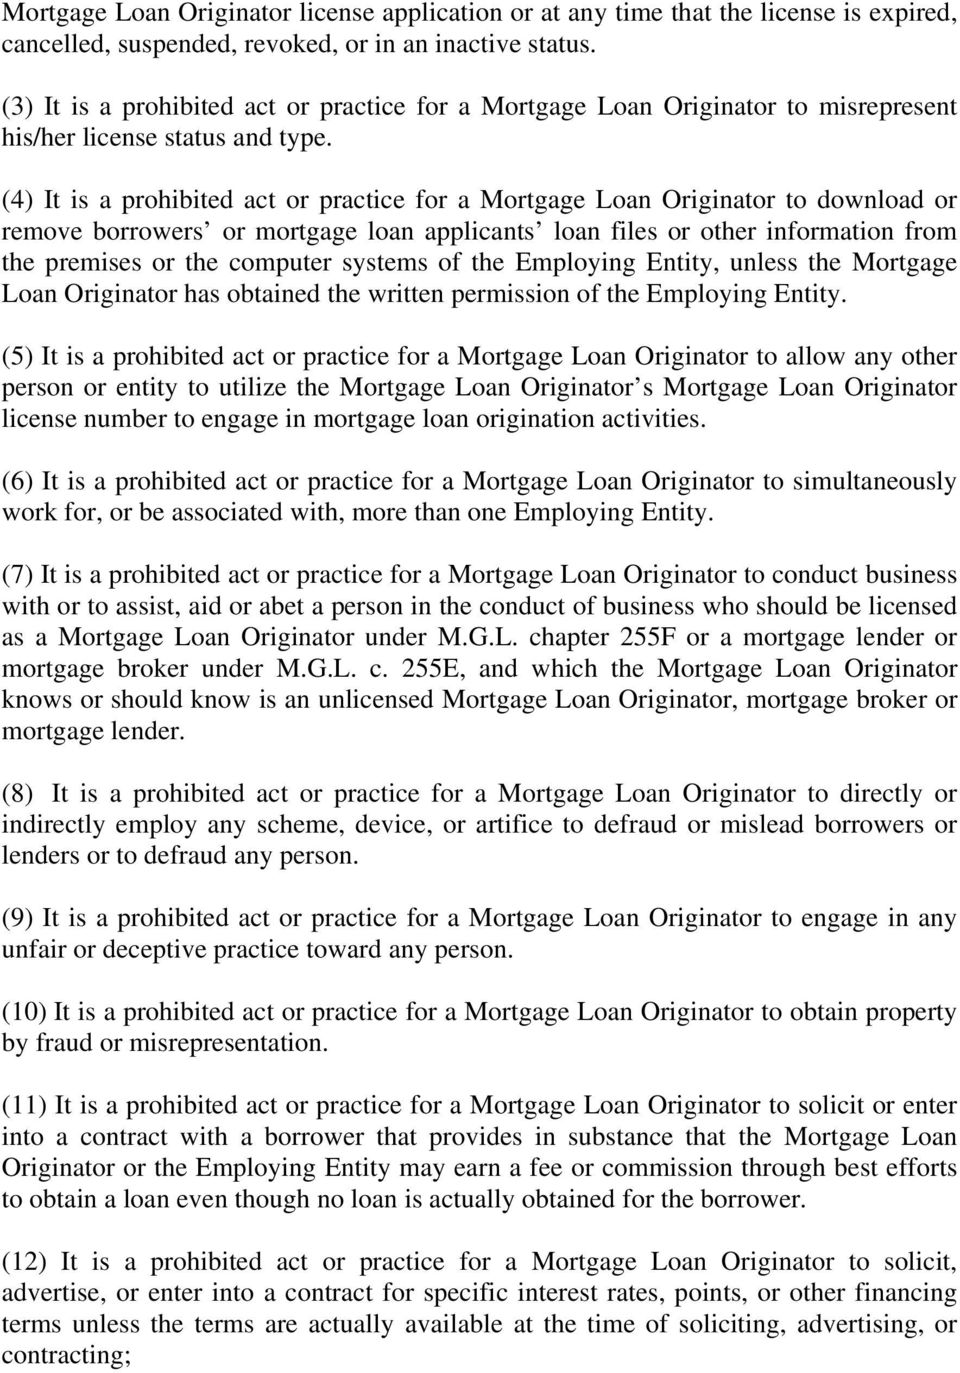 (4) It is a prohibited act or practice for a Mortgage Loan Originator to download or remove borrowers or mortgage loan applicants loan files or other information from the premises or the computer